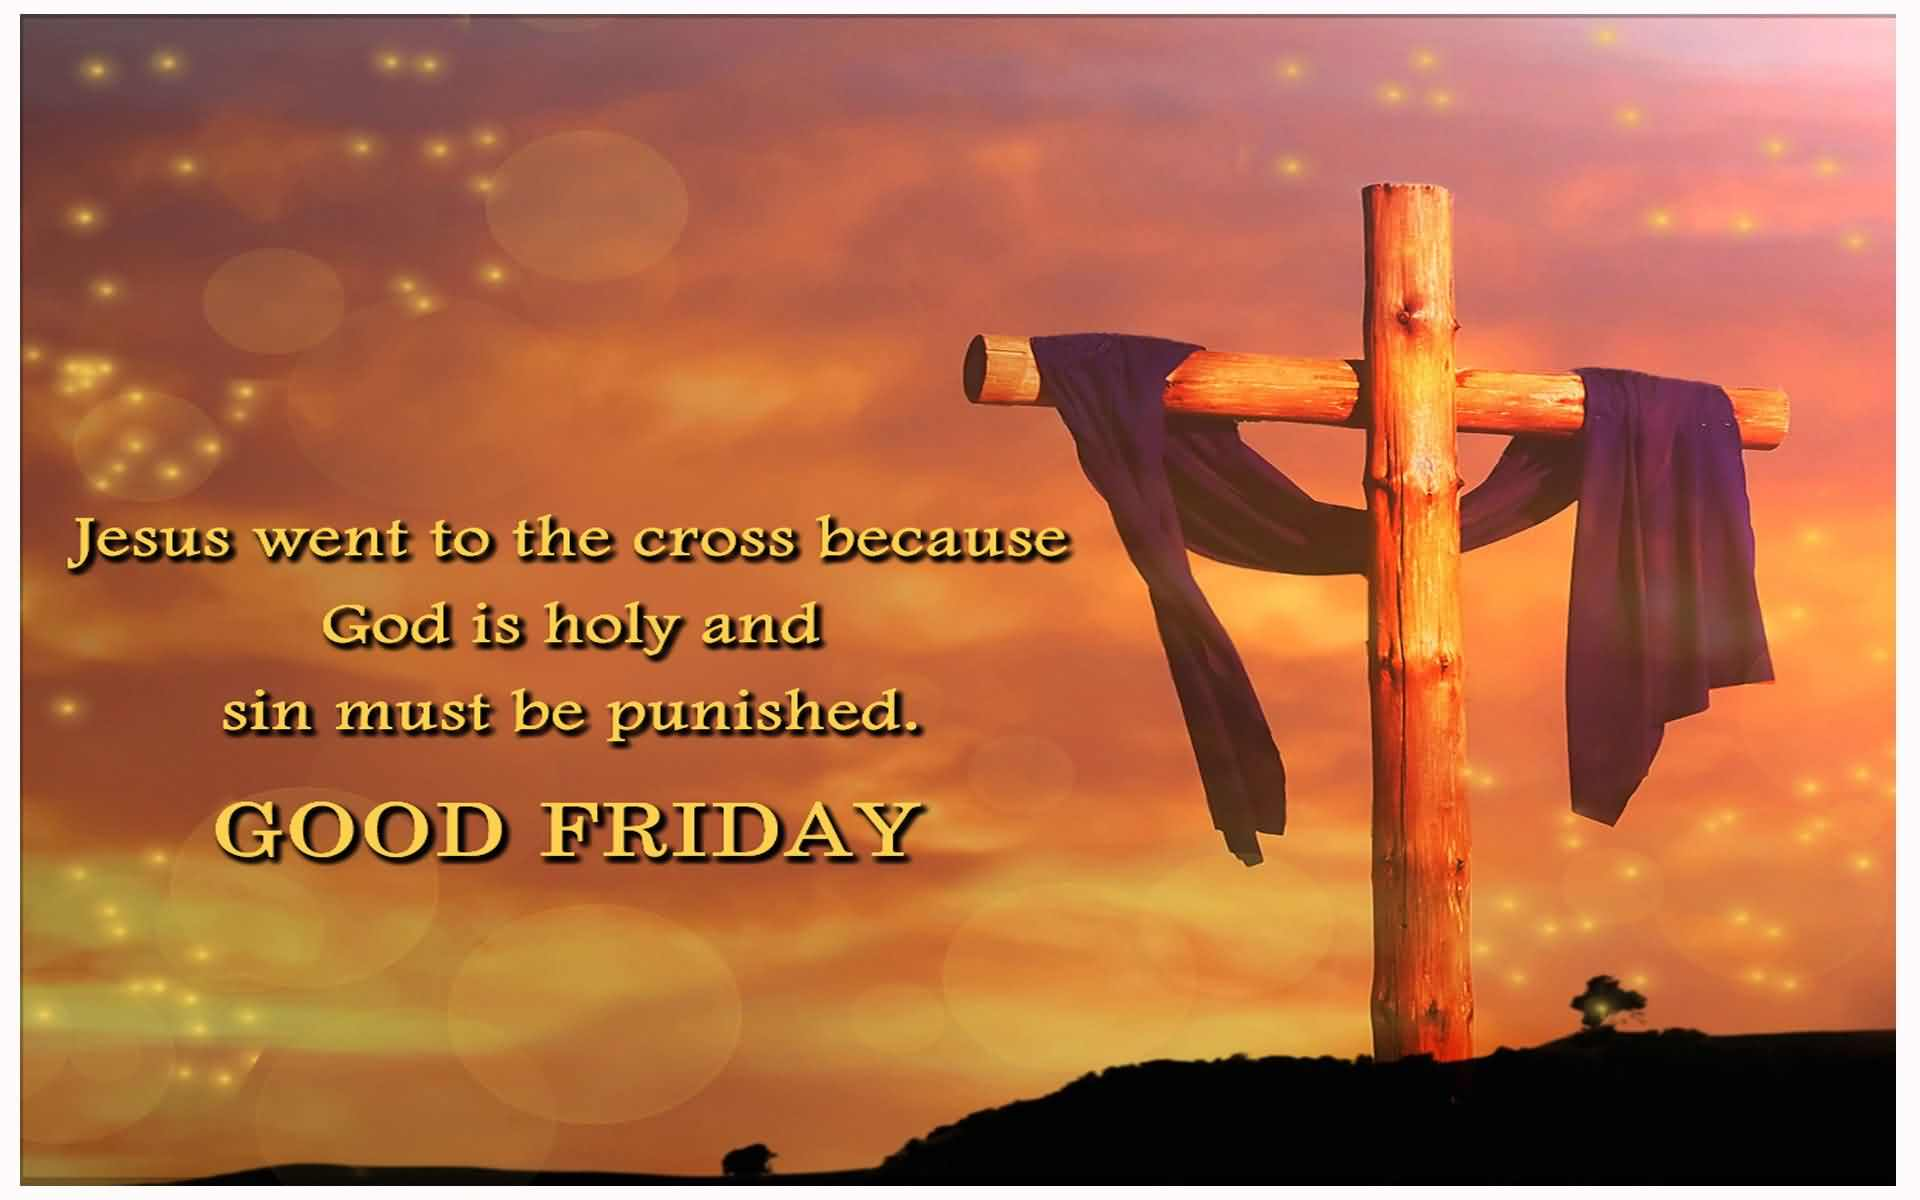 63-Good Friday Wishes